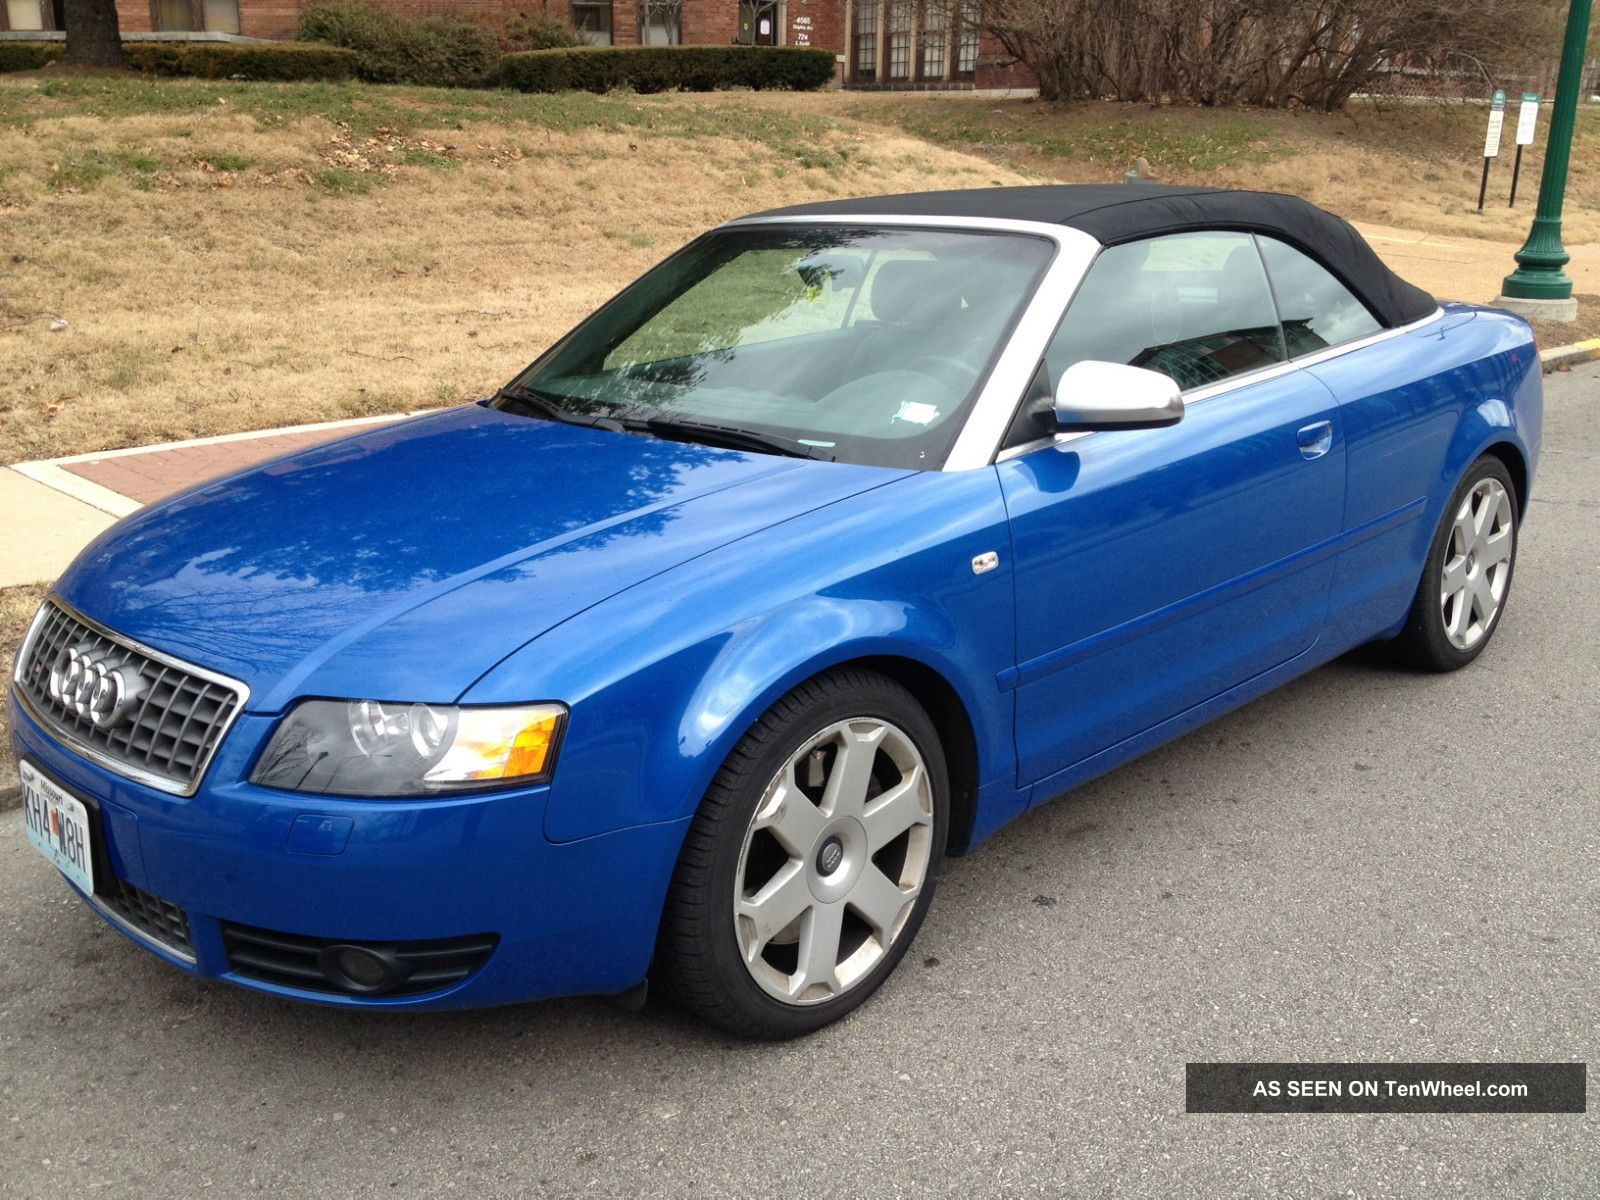 2004 toyota corolla verso additionally 2015 bmw m4 convertible blue as